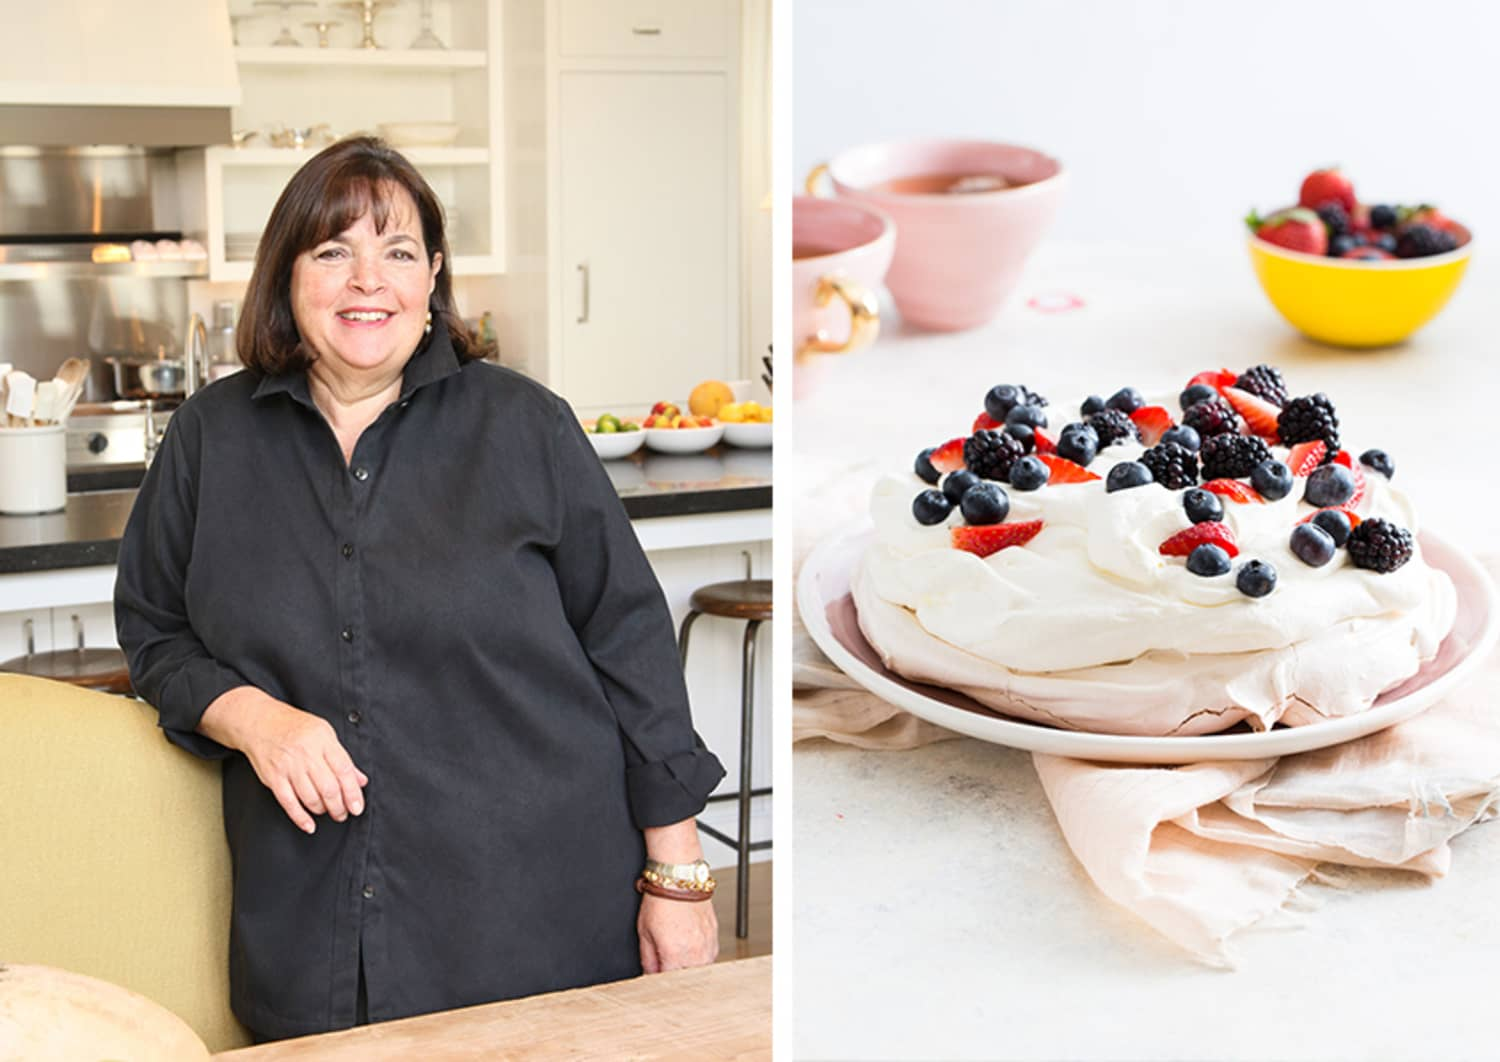 Ina Garten Shares 5 Desserts to Make Before Summer Ends